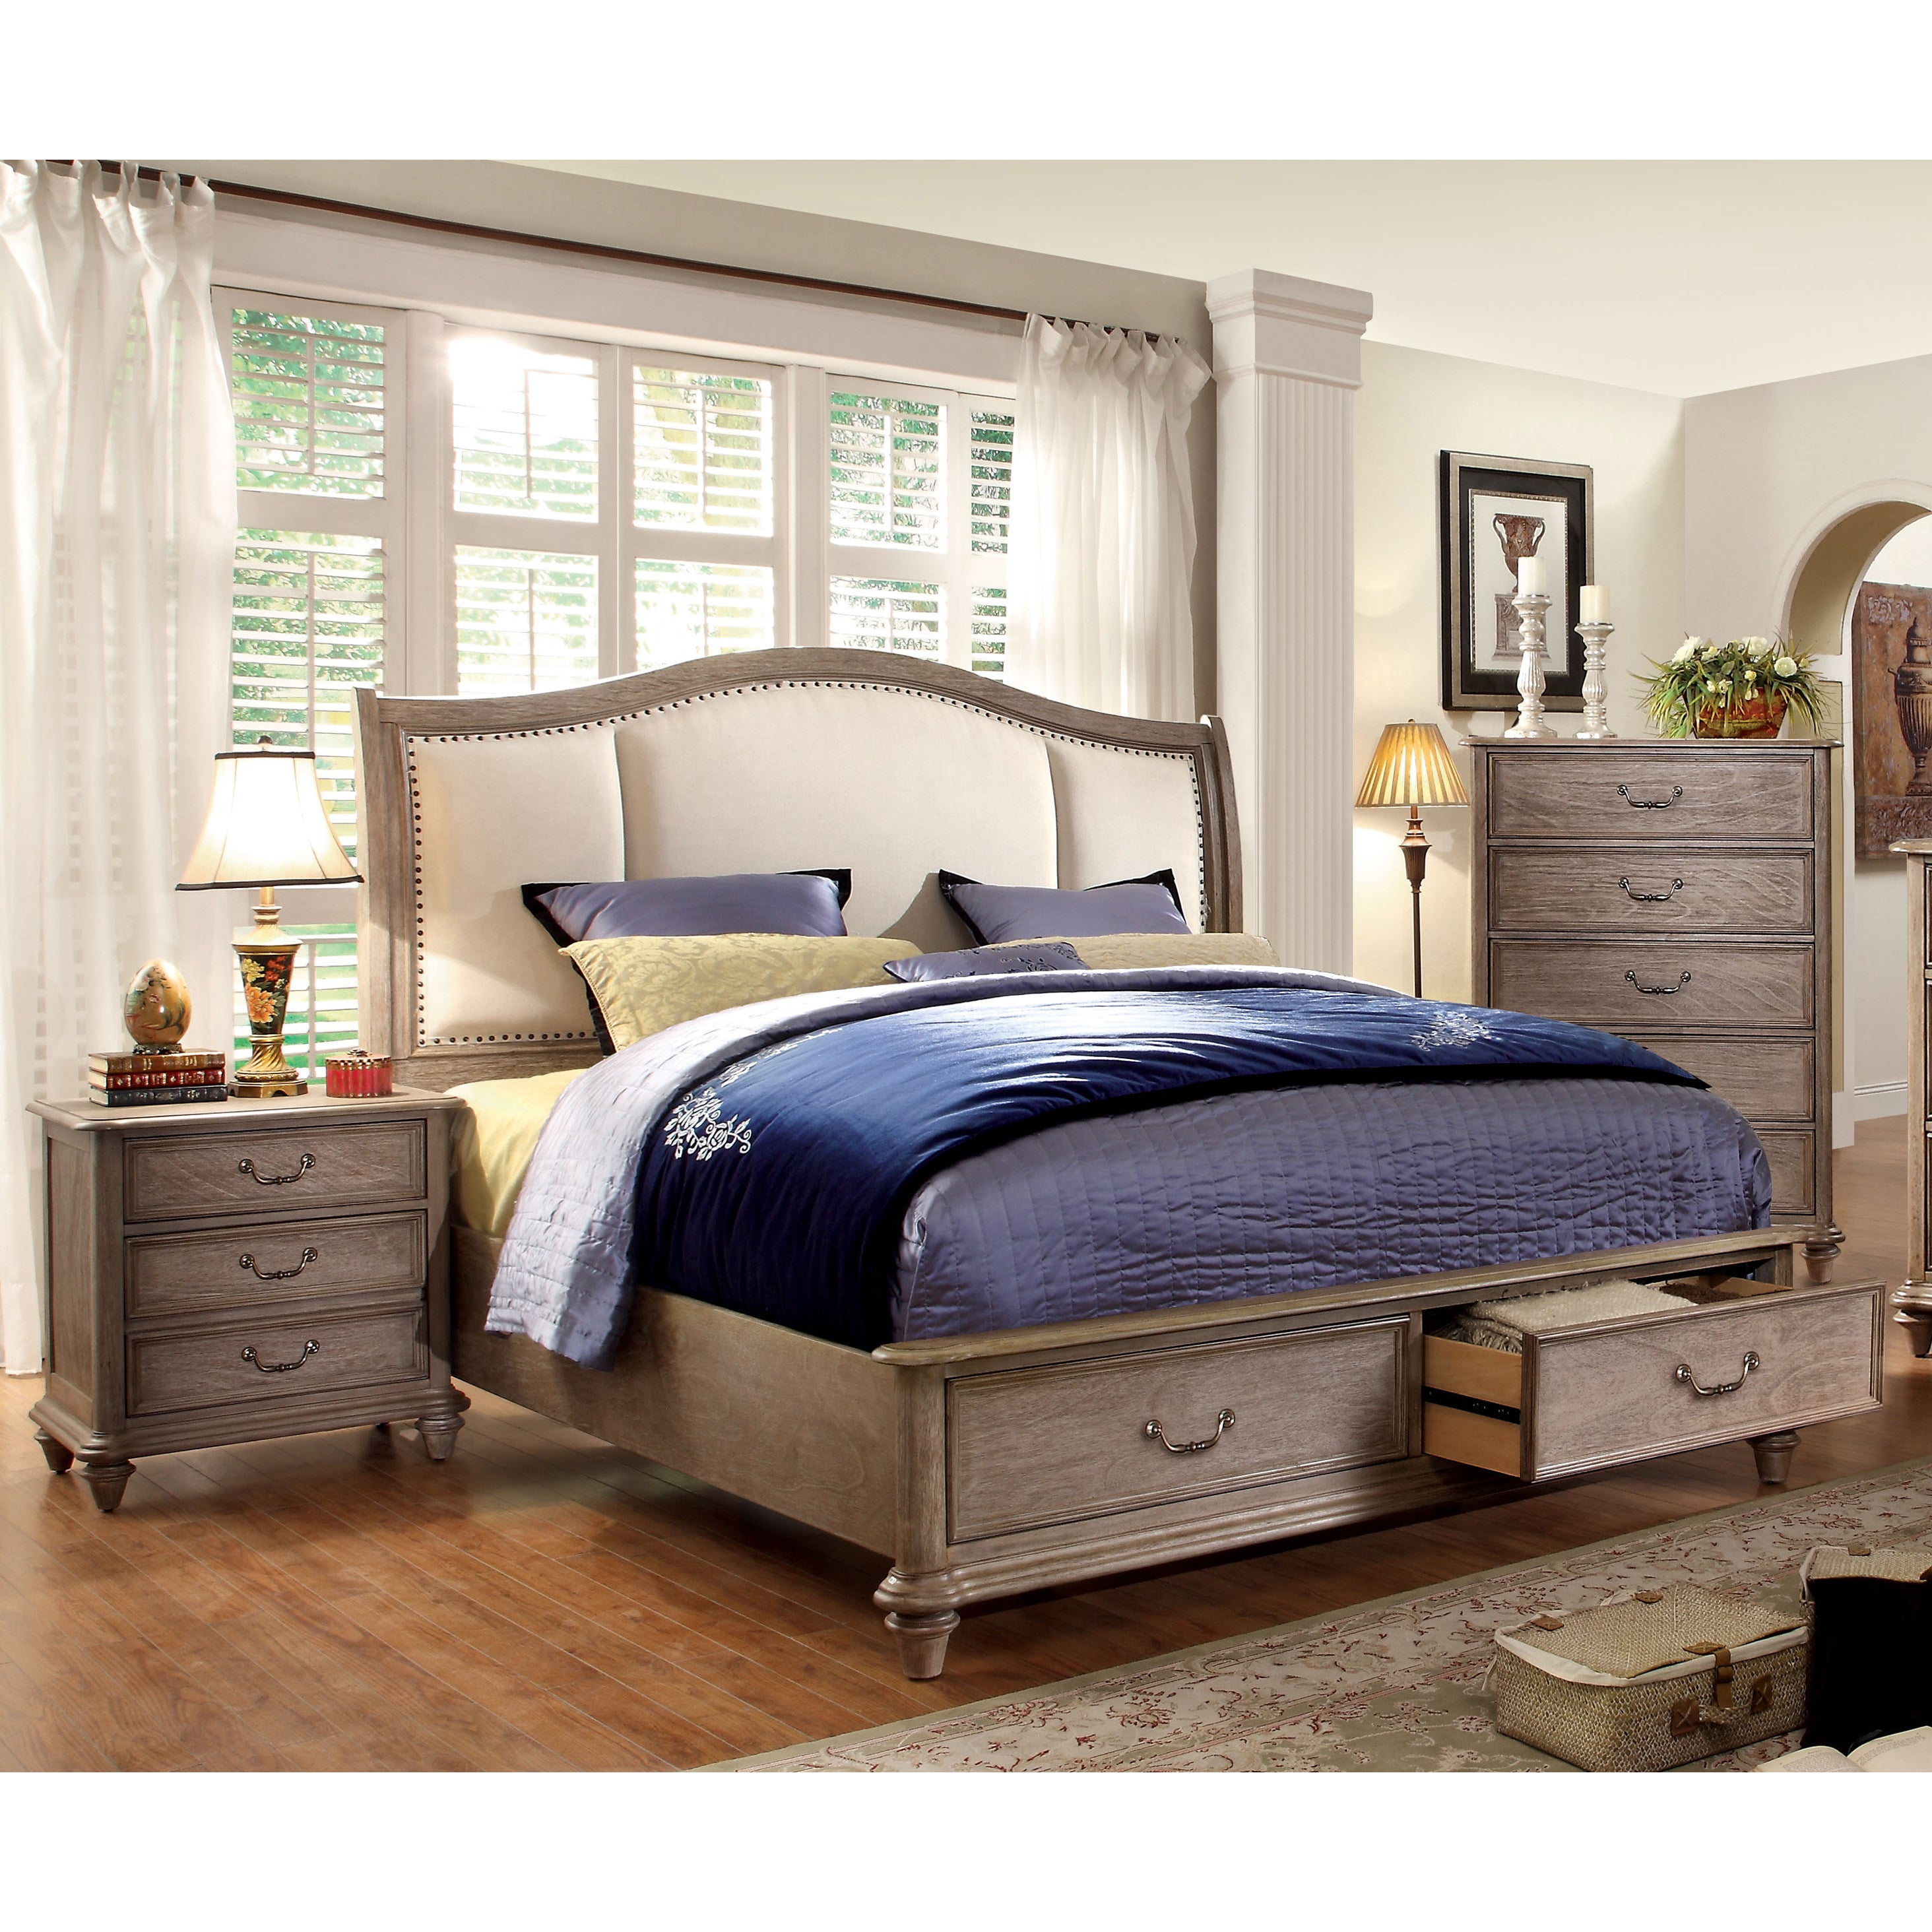 Minka IV Country Rustic Grey 2-Piece Bedroom Set by FOA